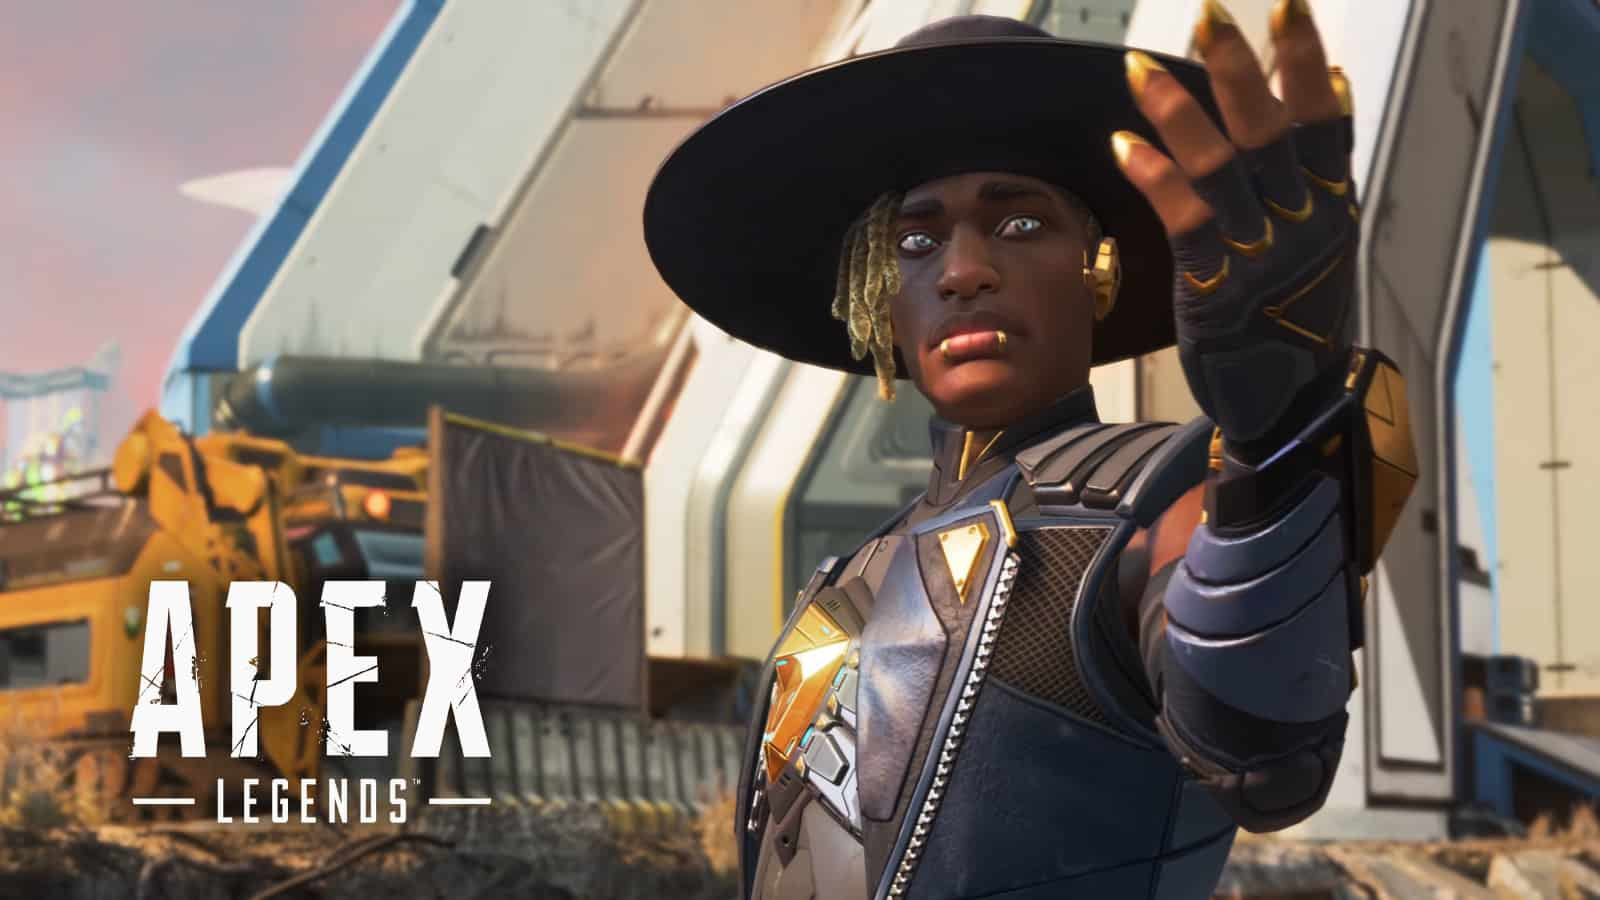 Apex Legends Tier List: We have explained each legend according to their rank